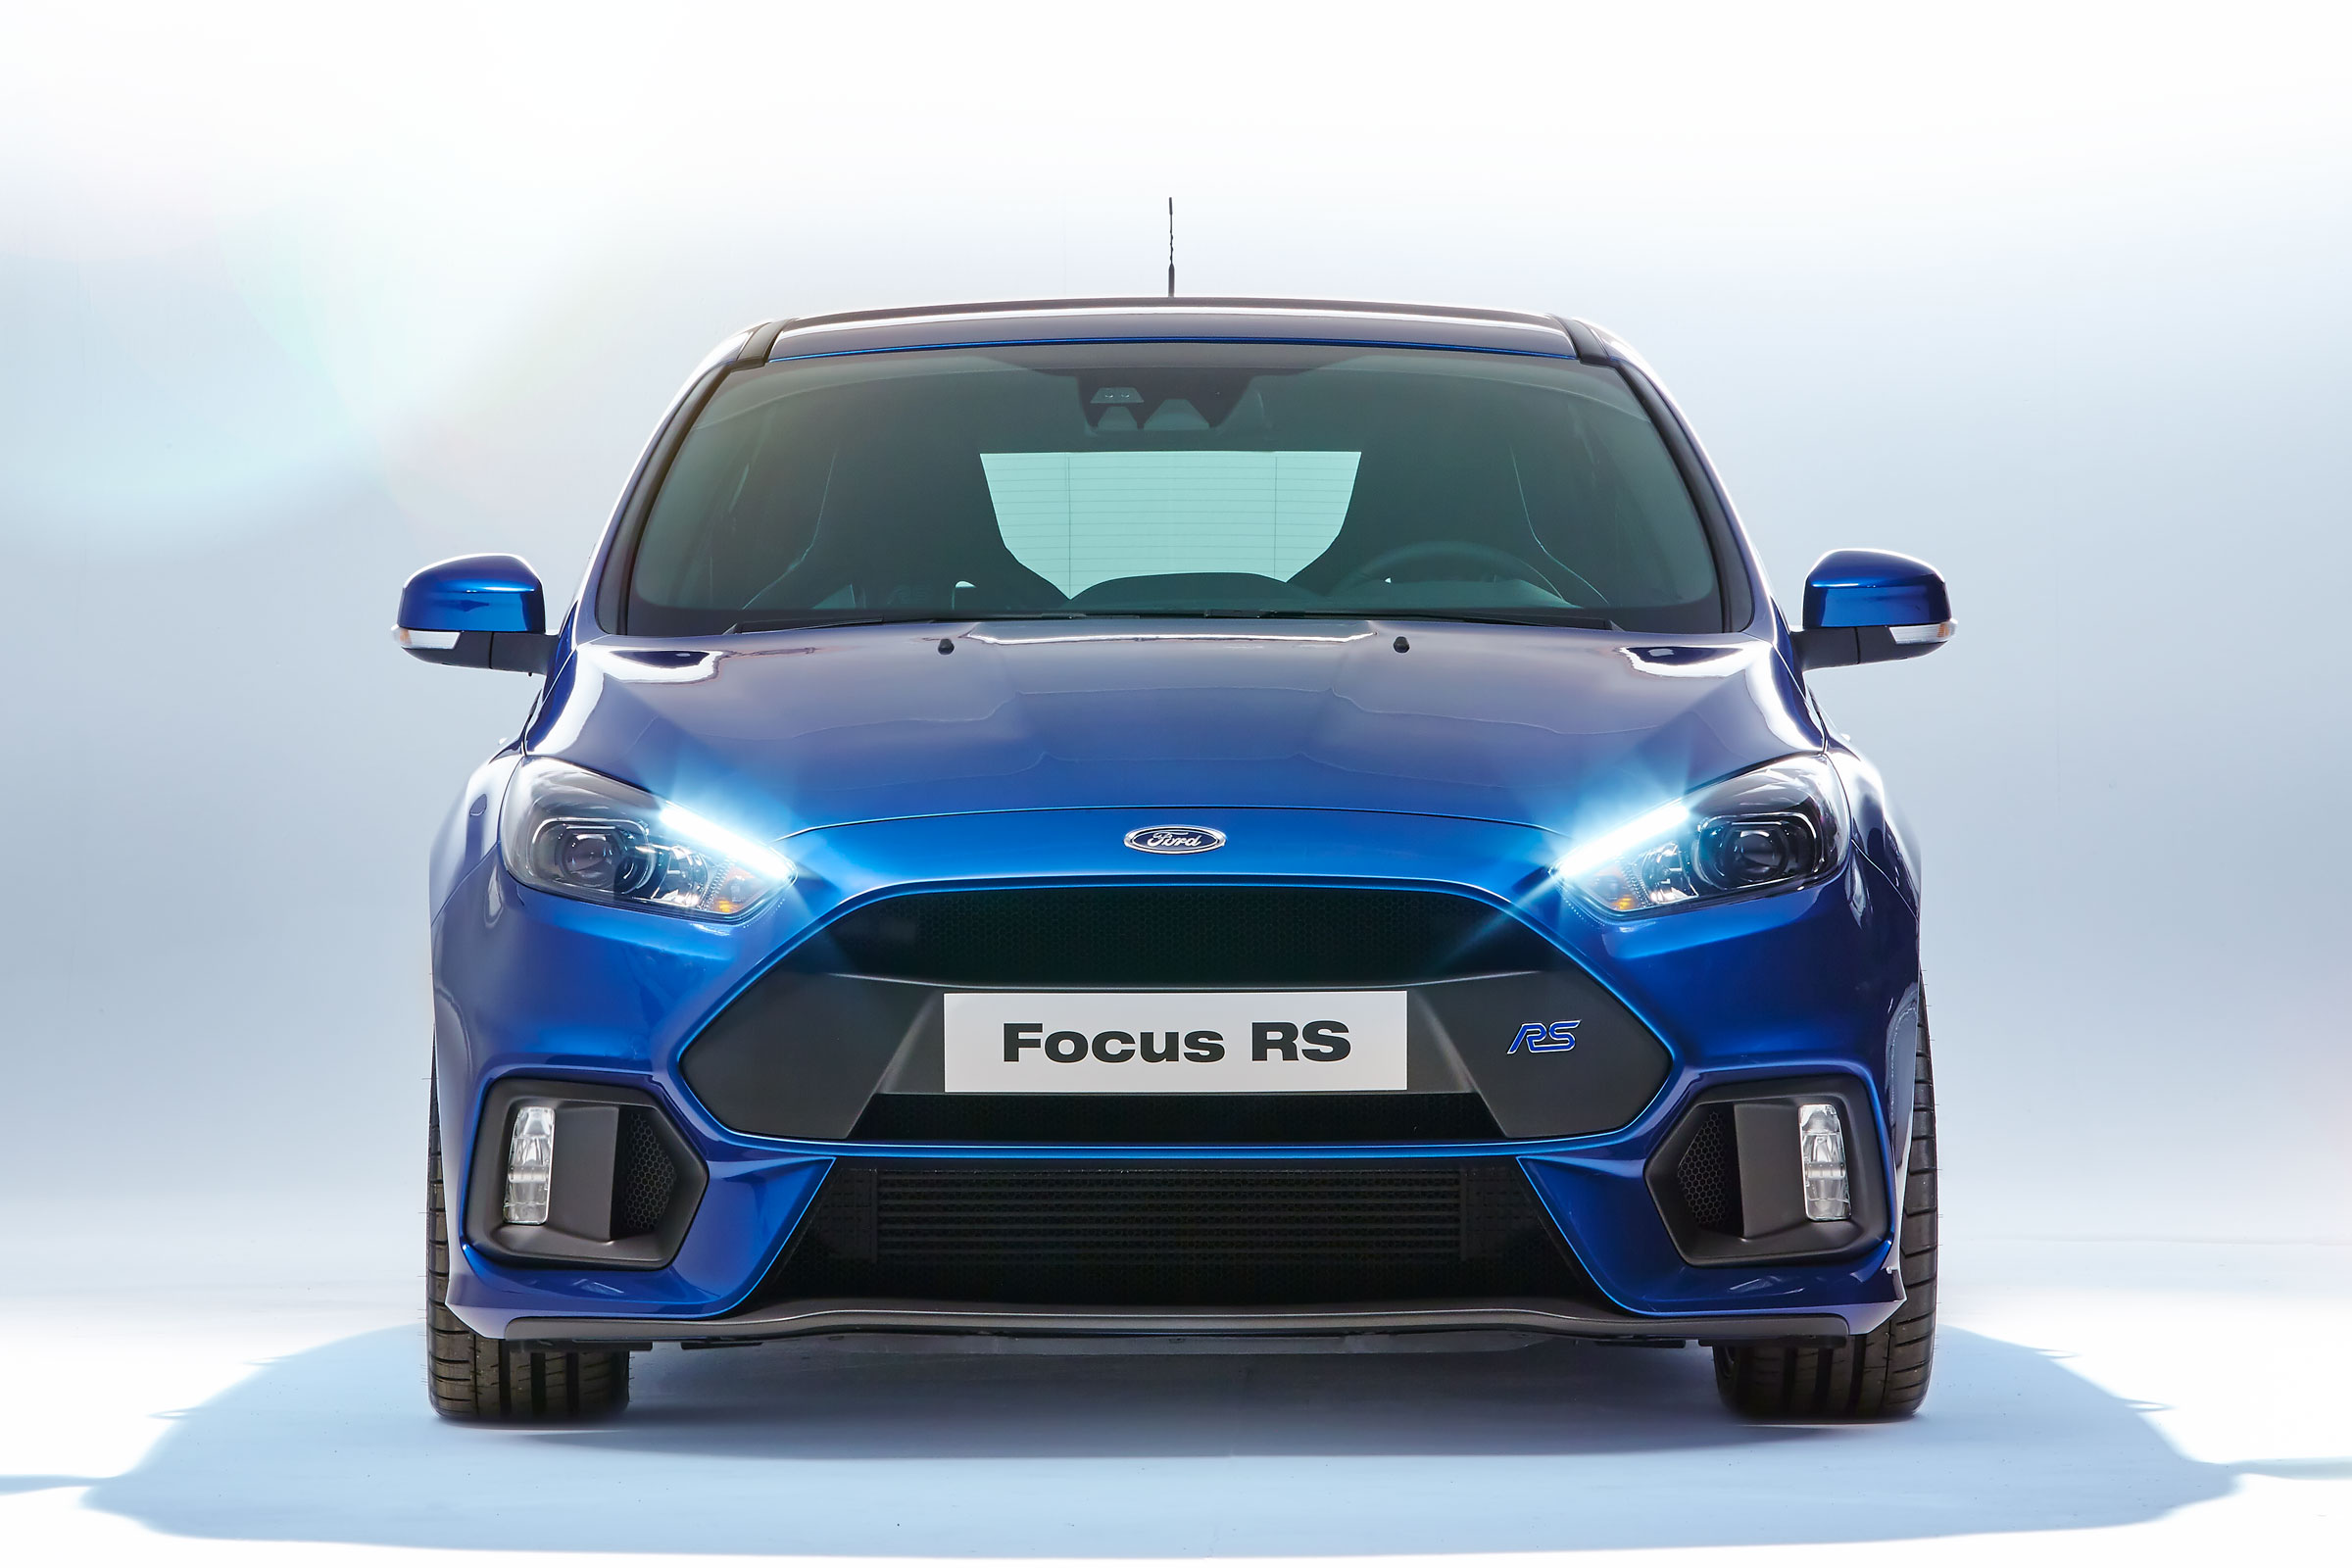 sema performance roush price focus gtspirit at ford launches rs car